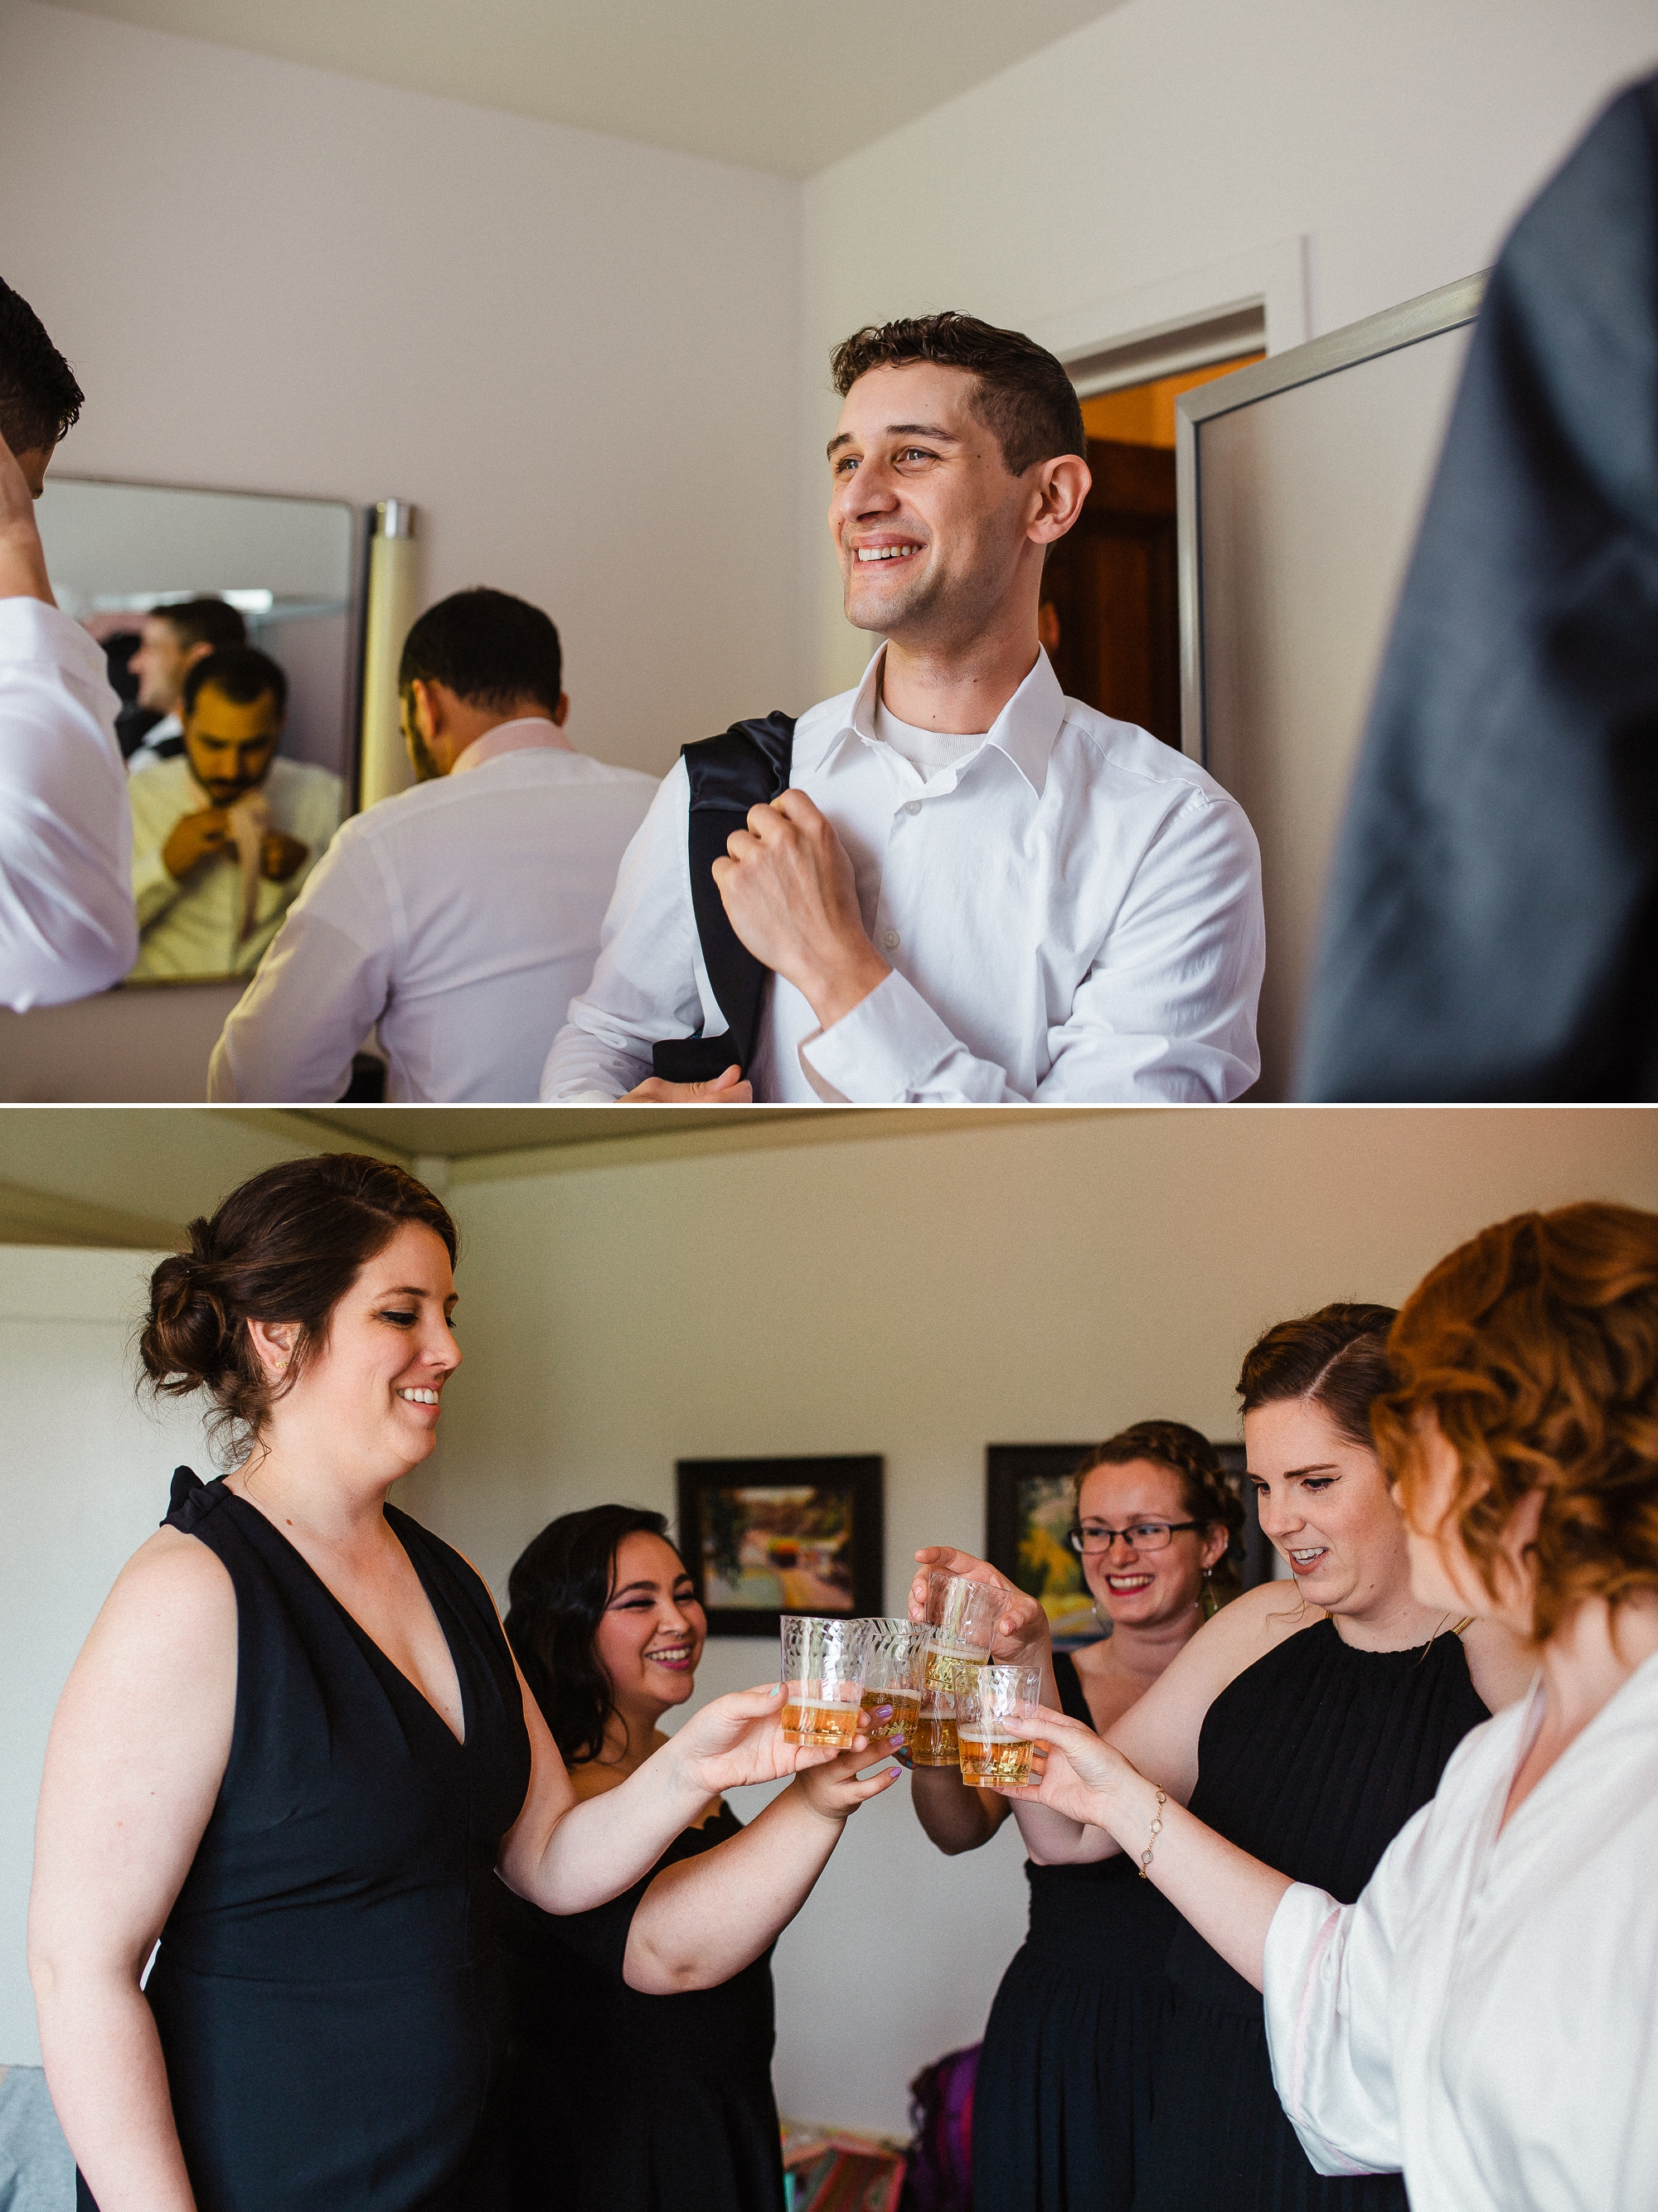 falkirk cultural center wedding 4.jpg